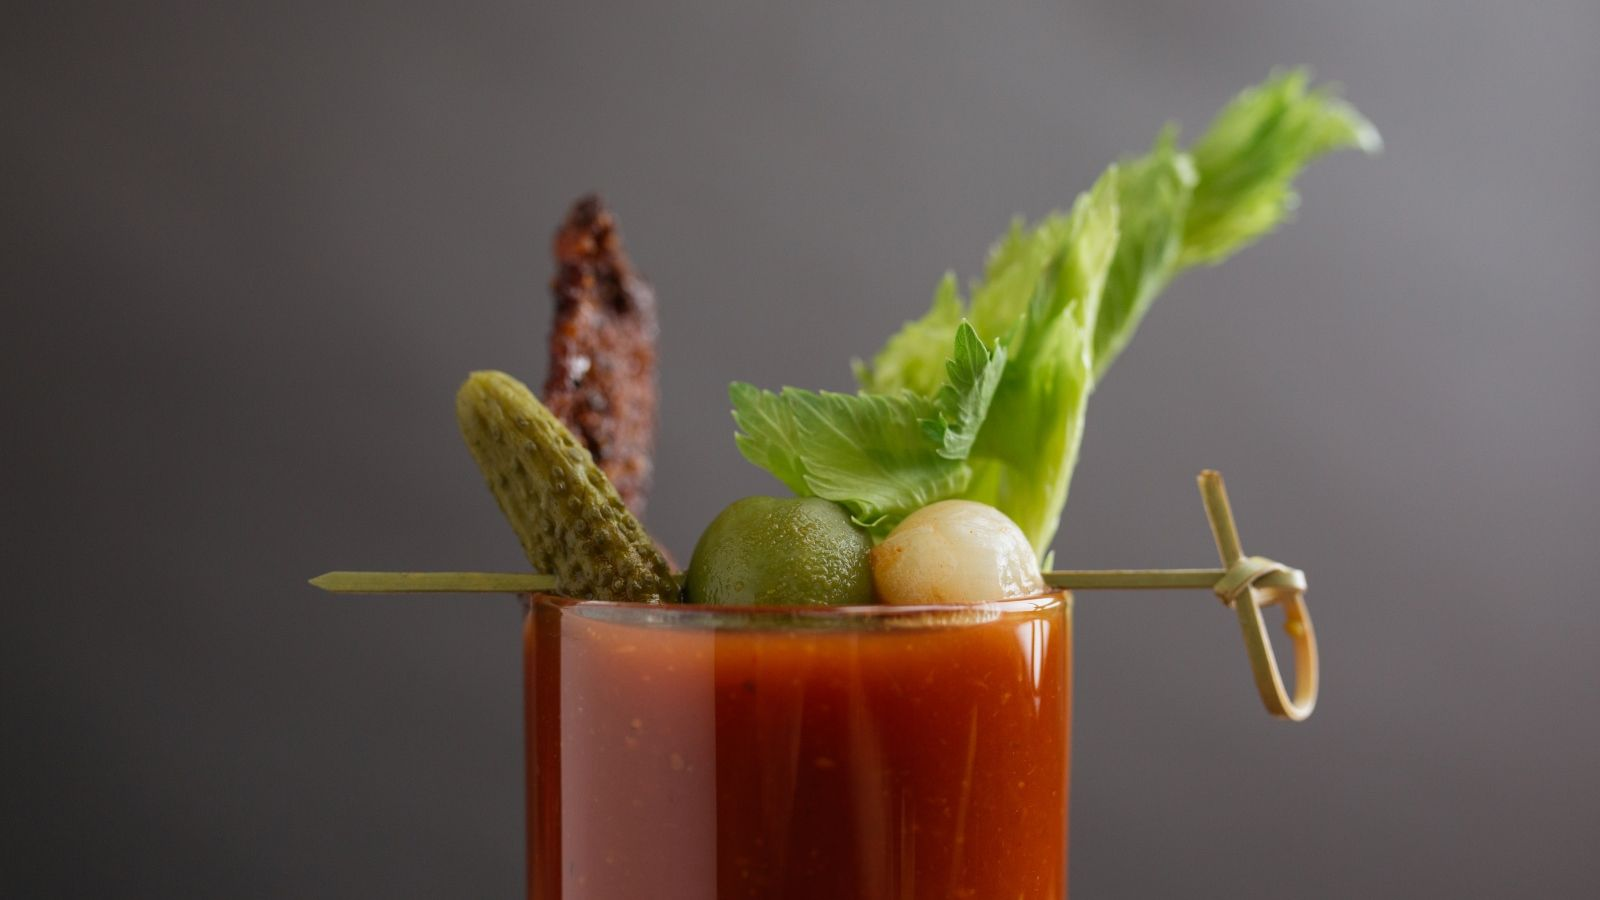 Corinne Restaurant - Bloody Mary